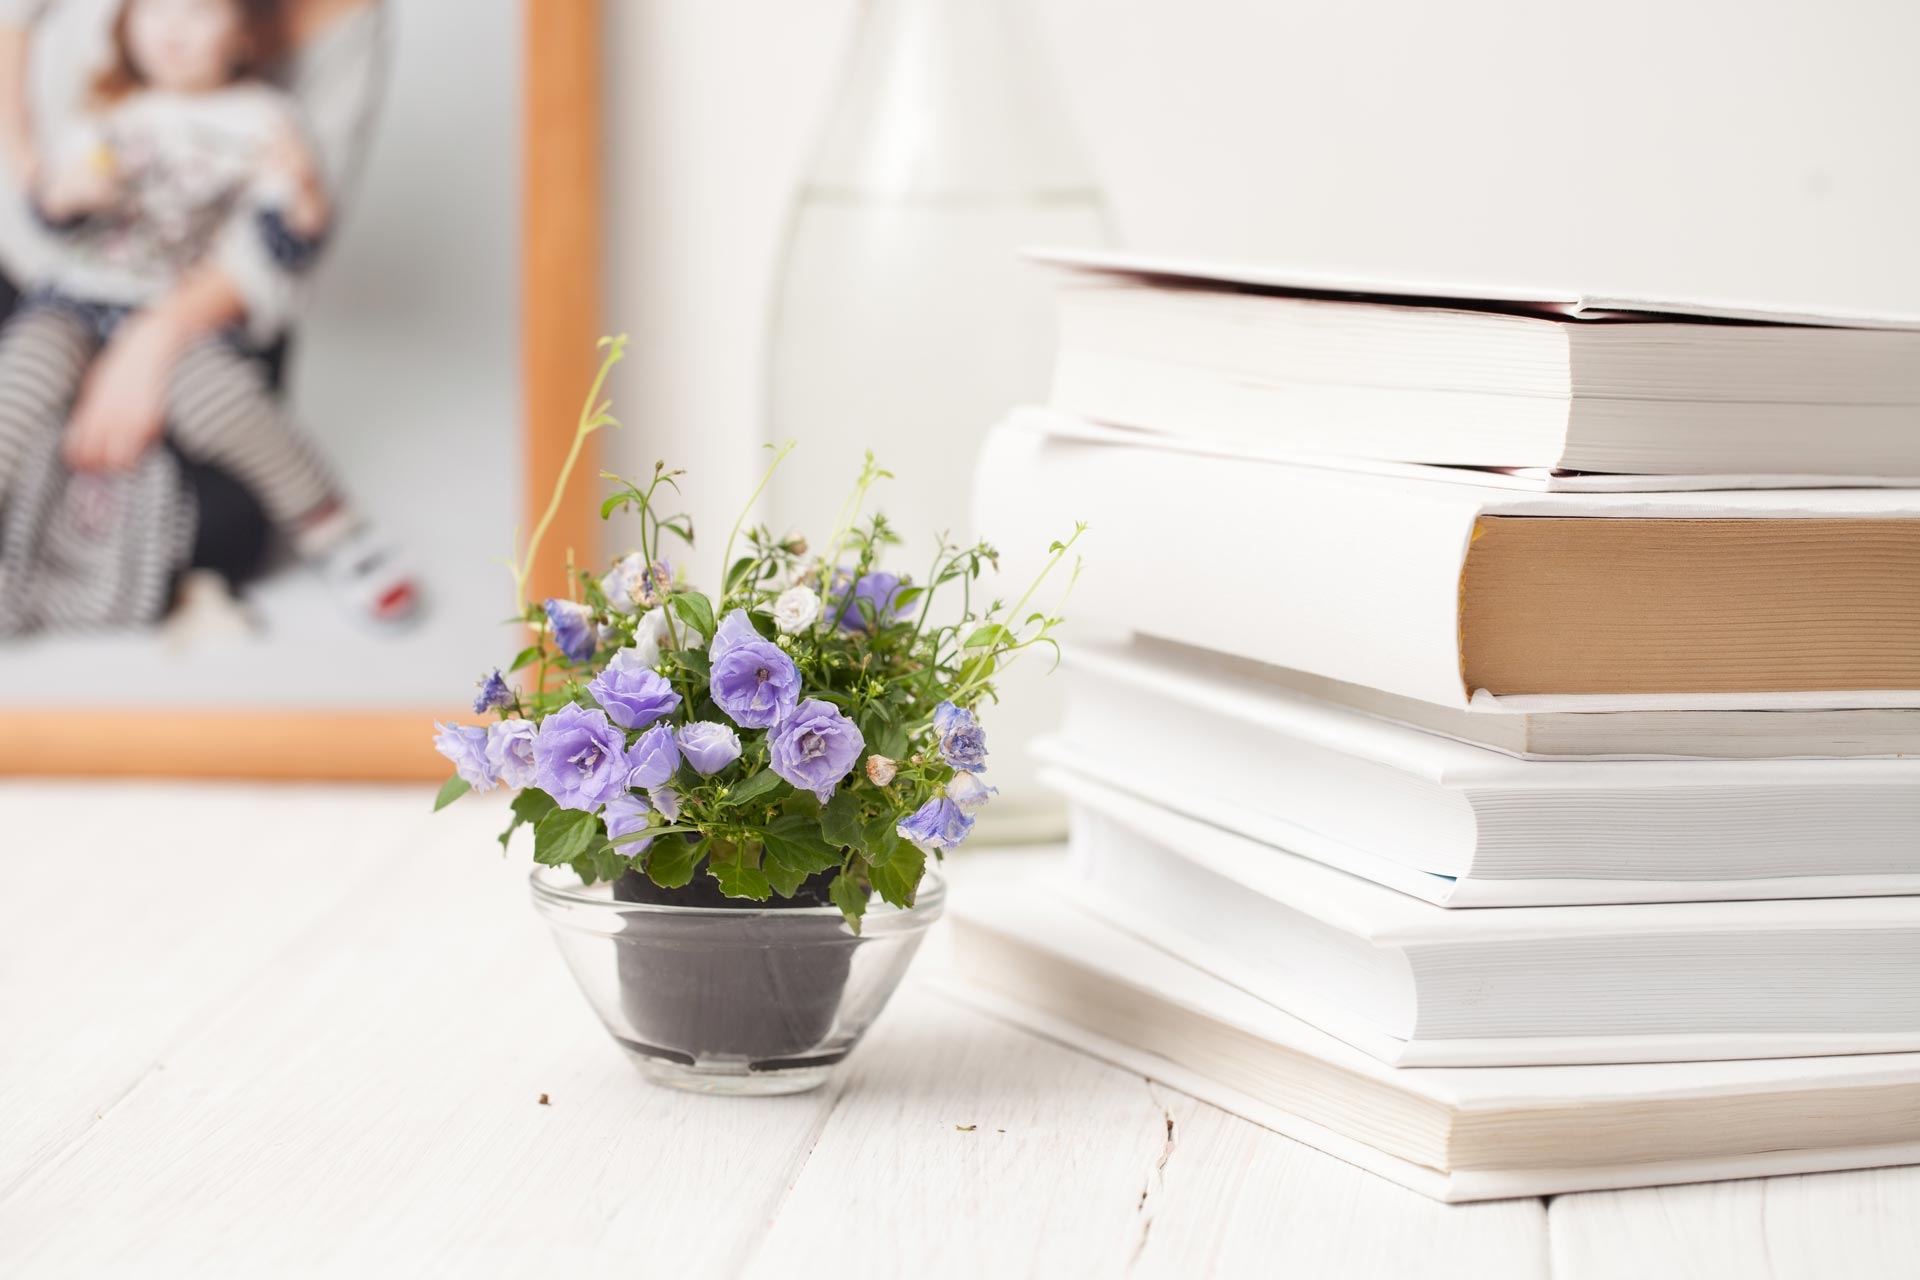 Stack of best books on simple living next to purple flowers on white table